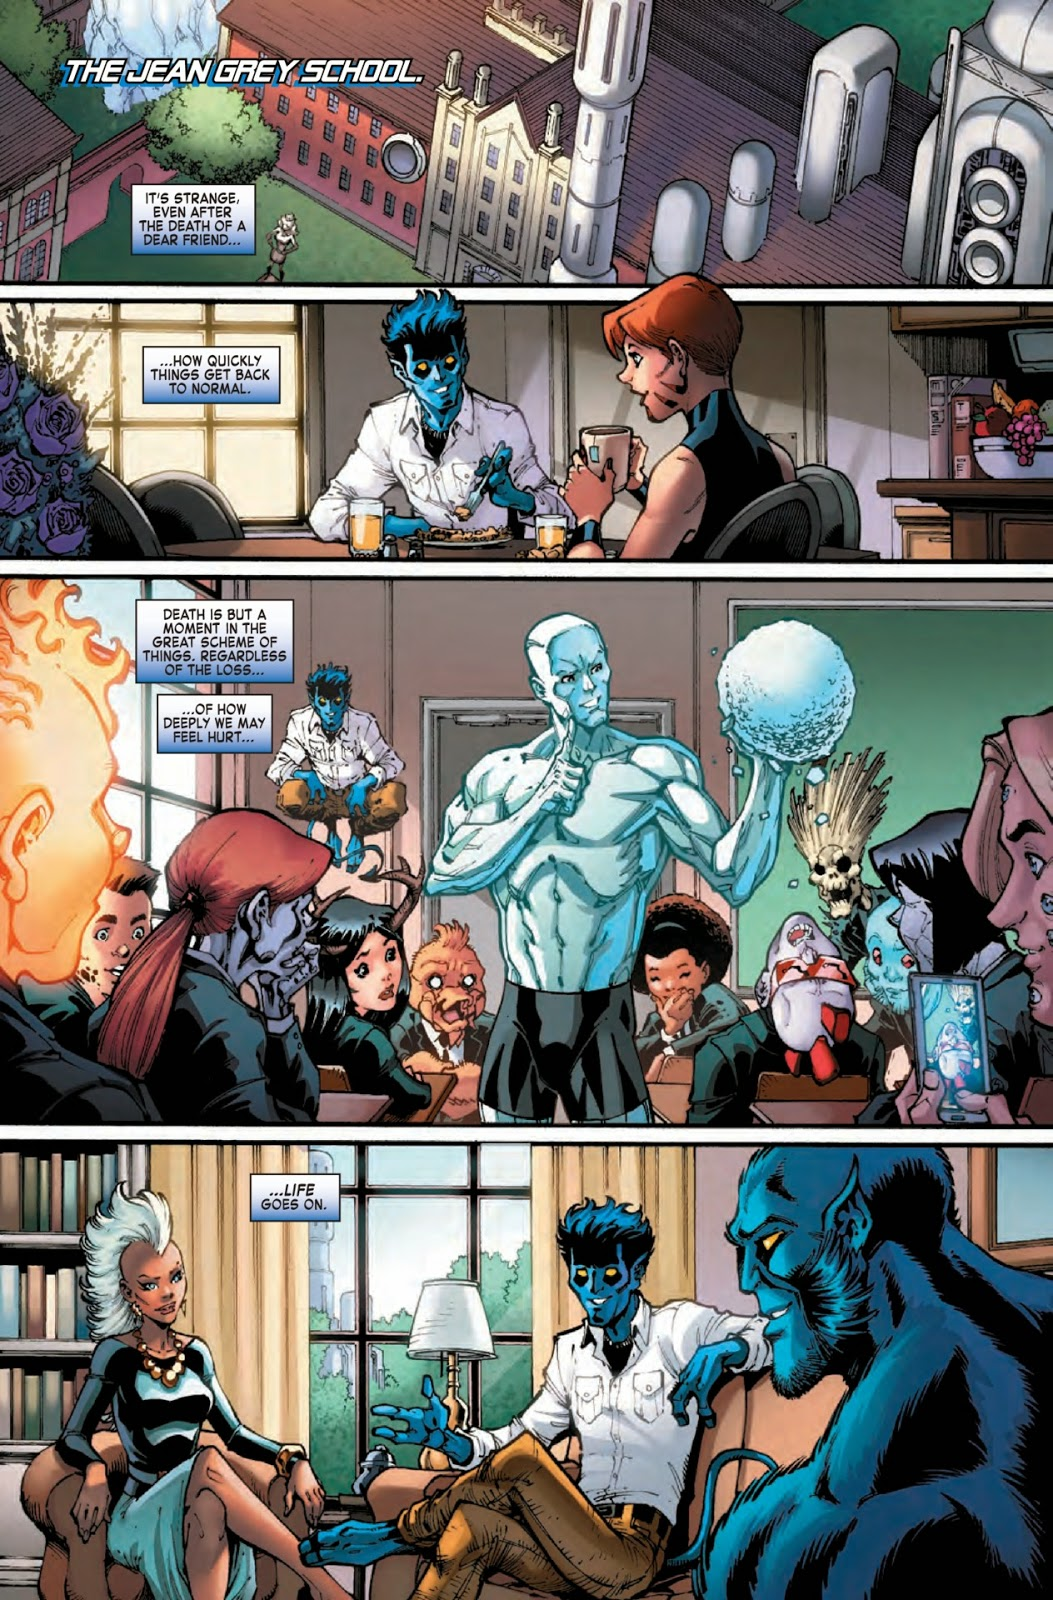 X-Men and the Jean Grey School